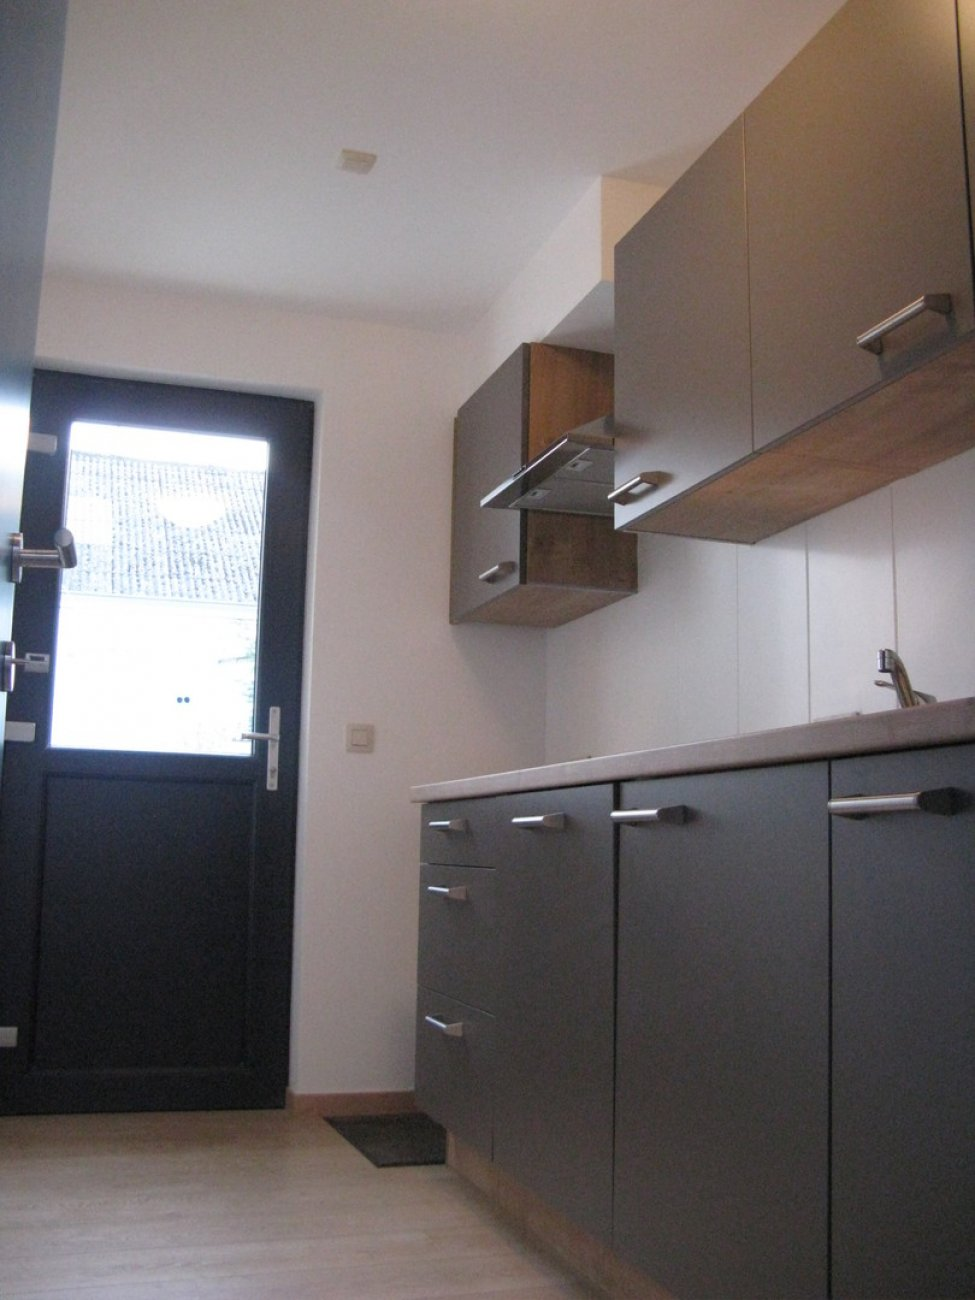 KN 2053 appartement